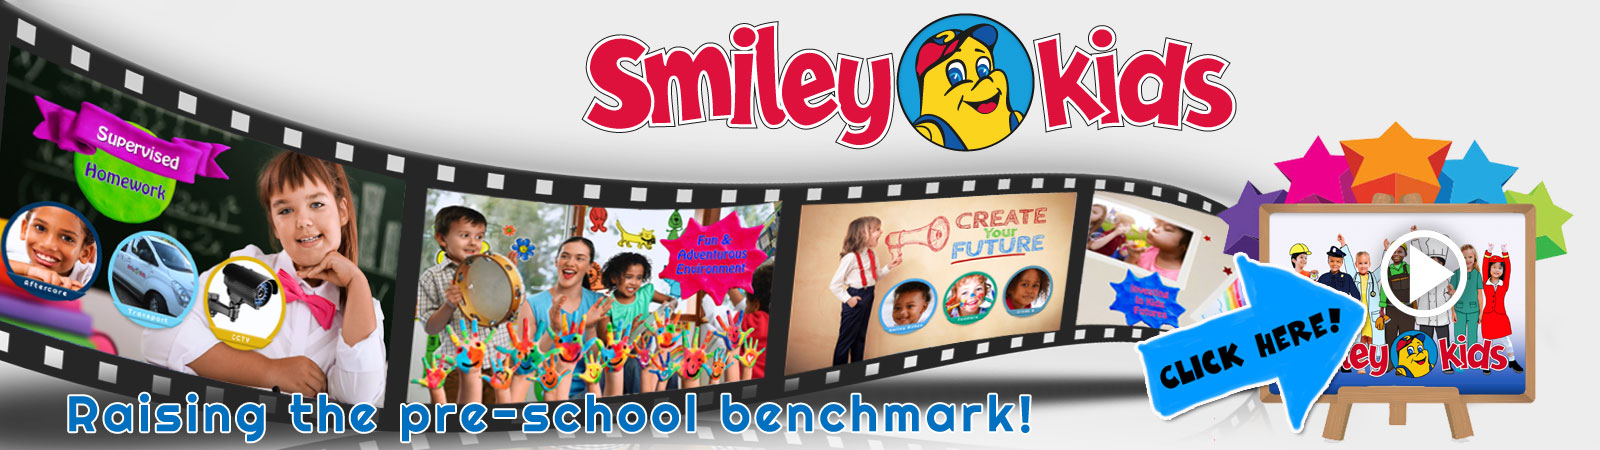 Smiley Kids Randburg Video